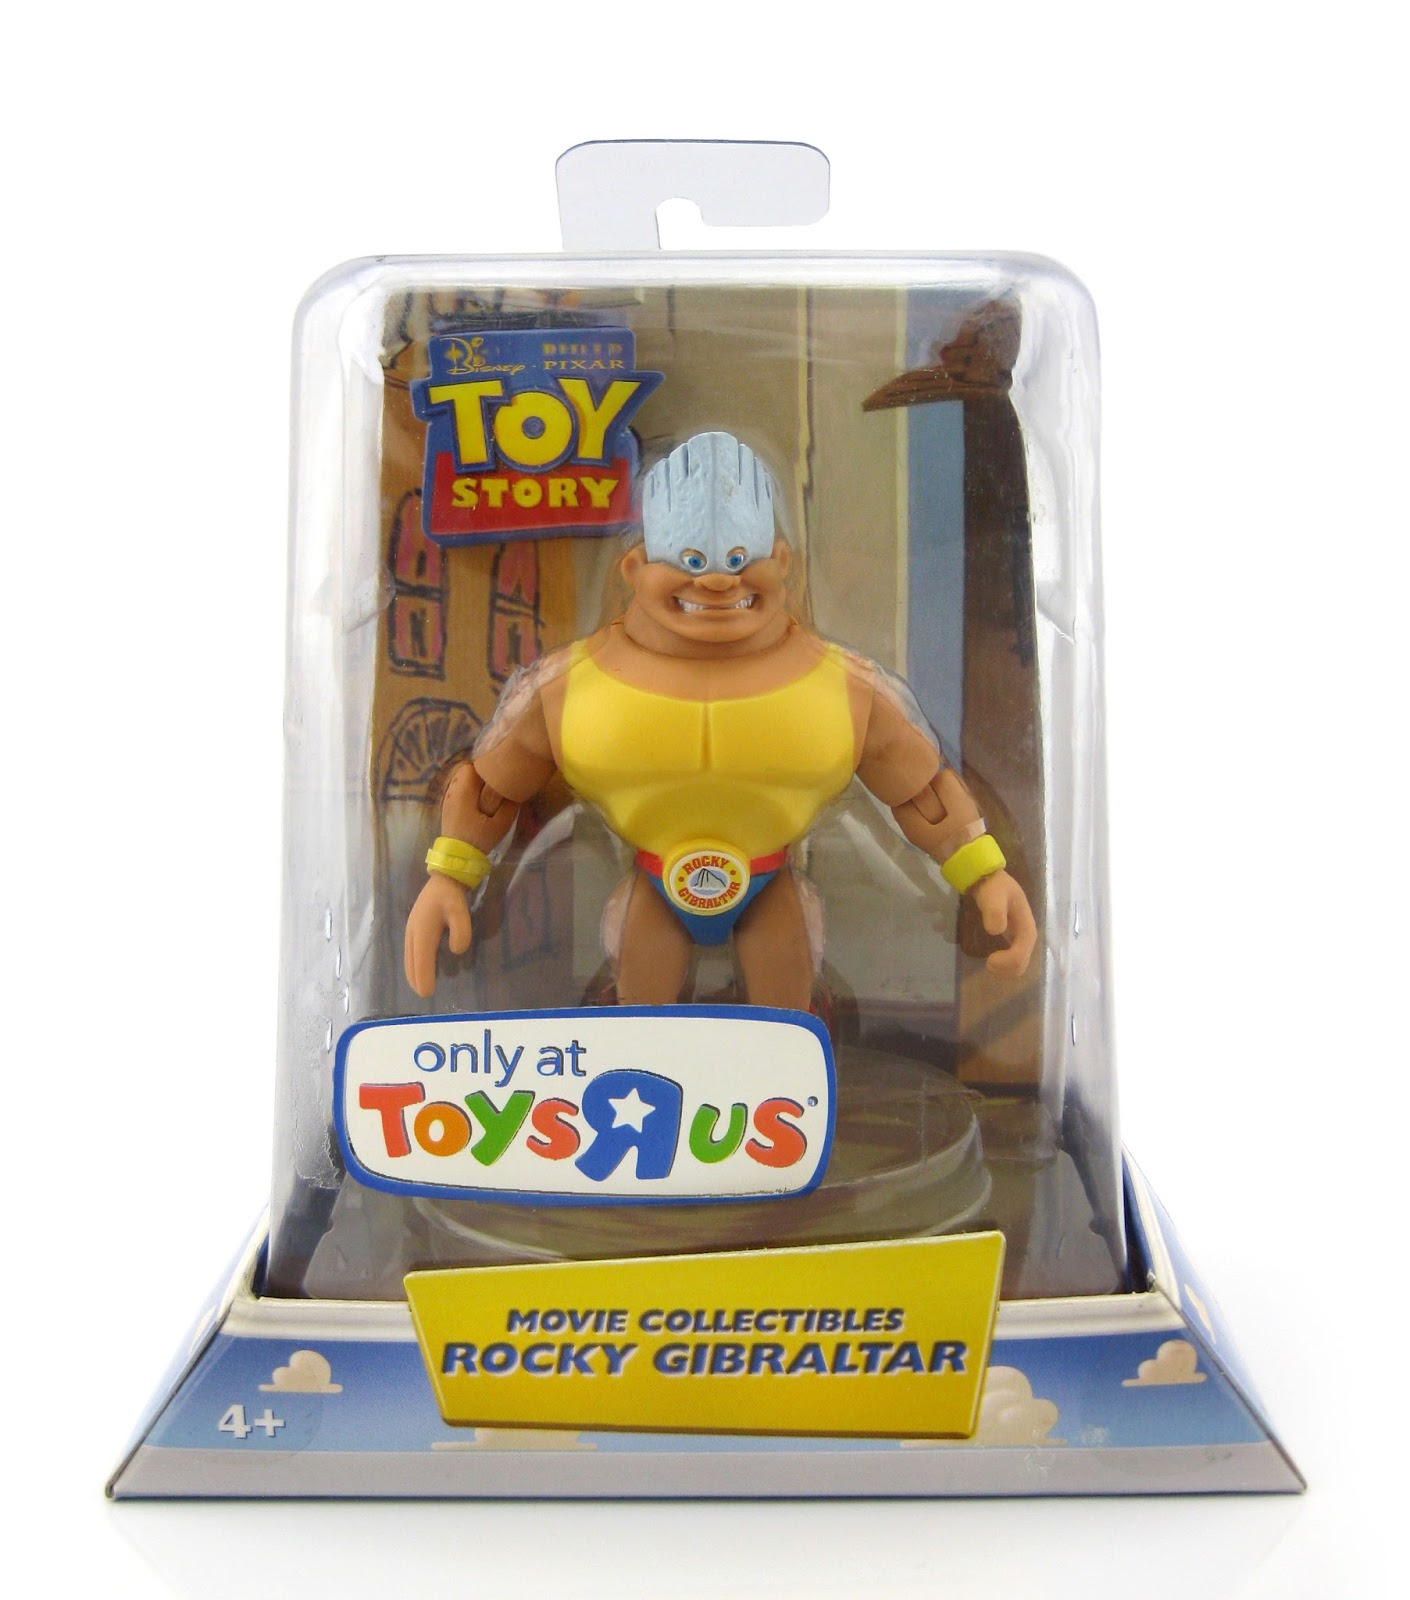 Dan The Pixar Fan Toy Story Rocky Gibraltar Movie Collectible Figure